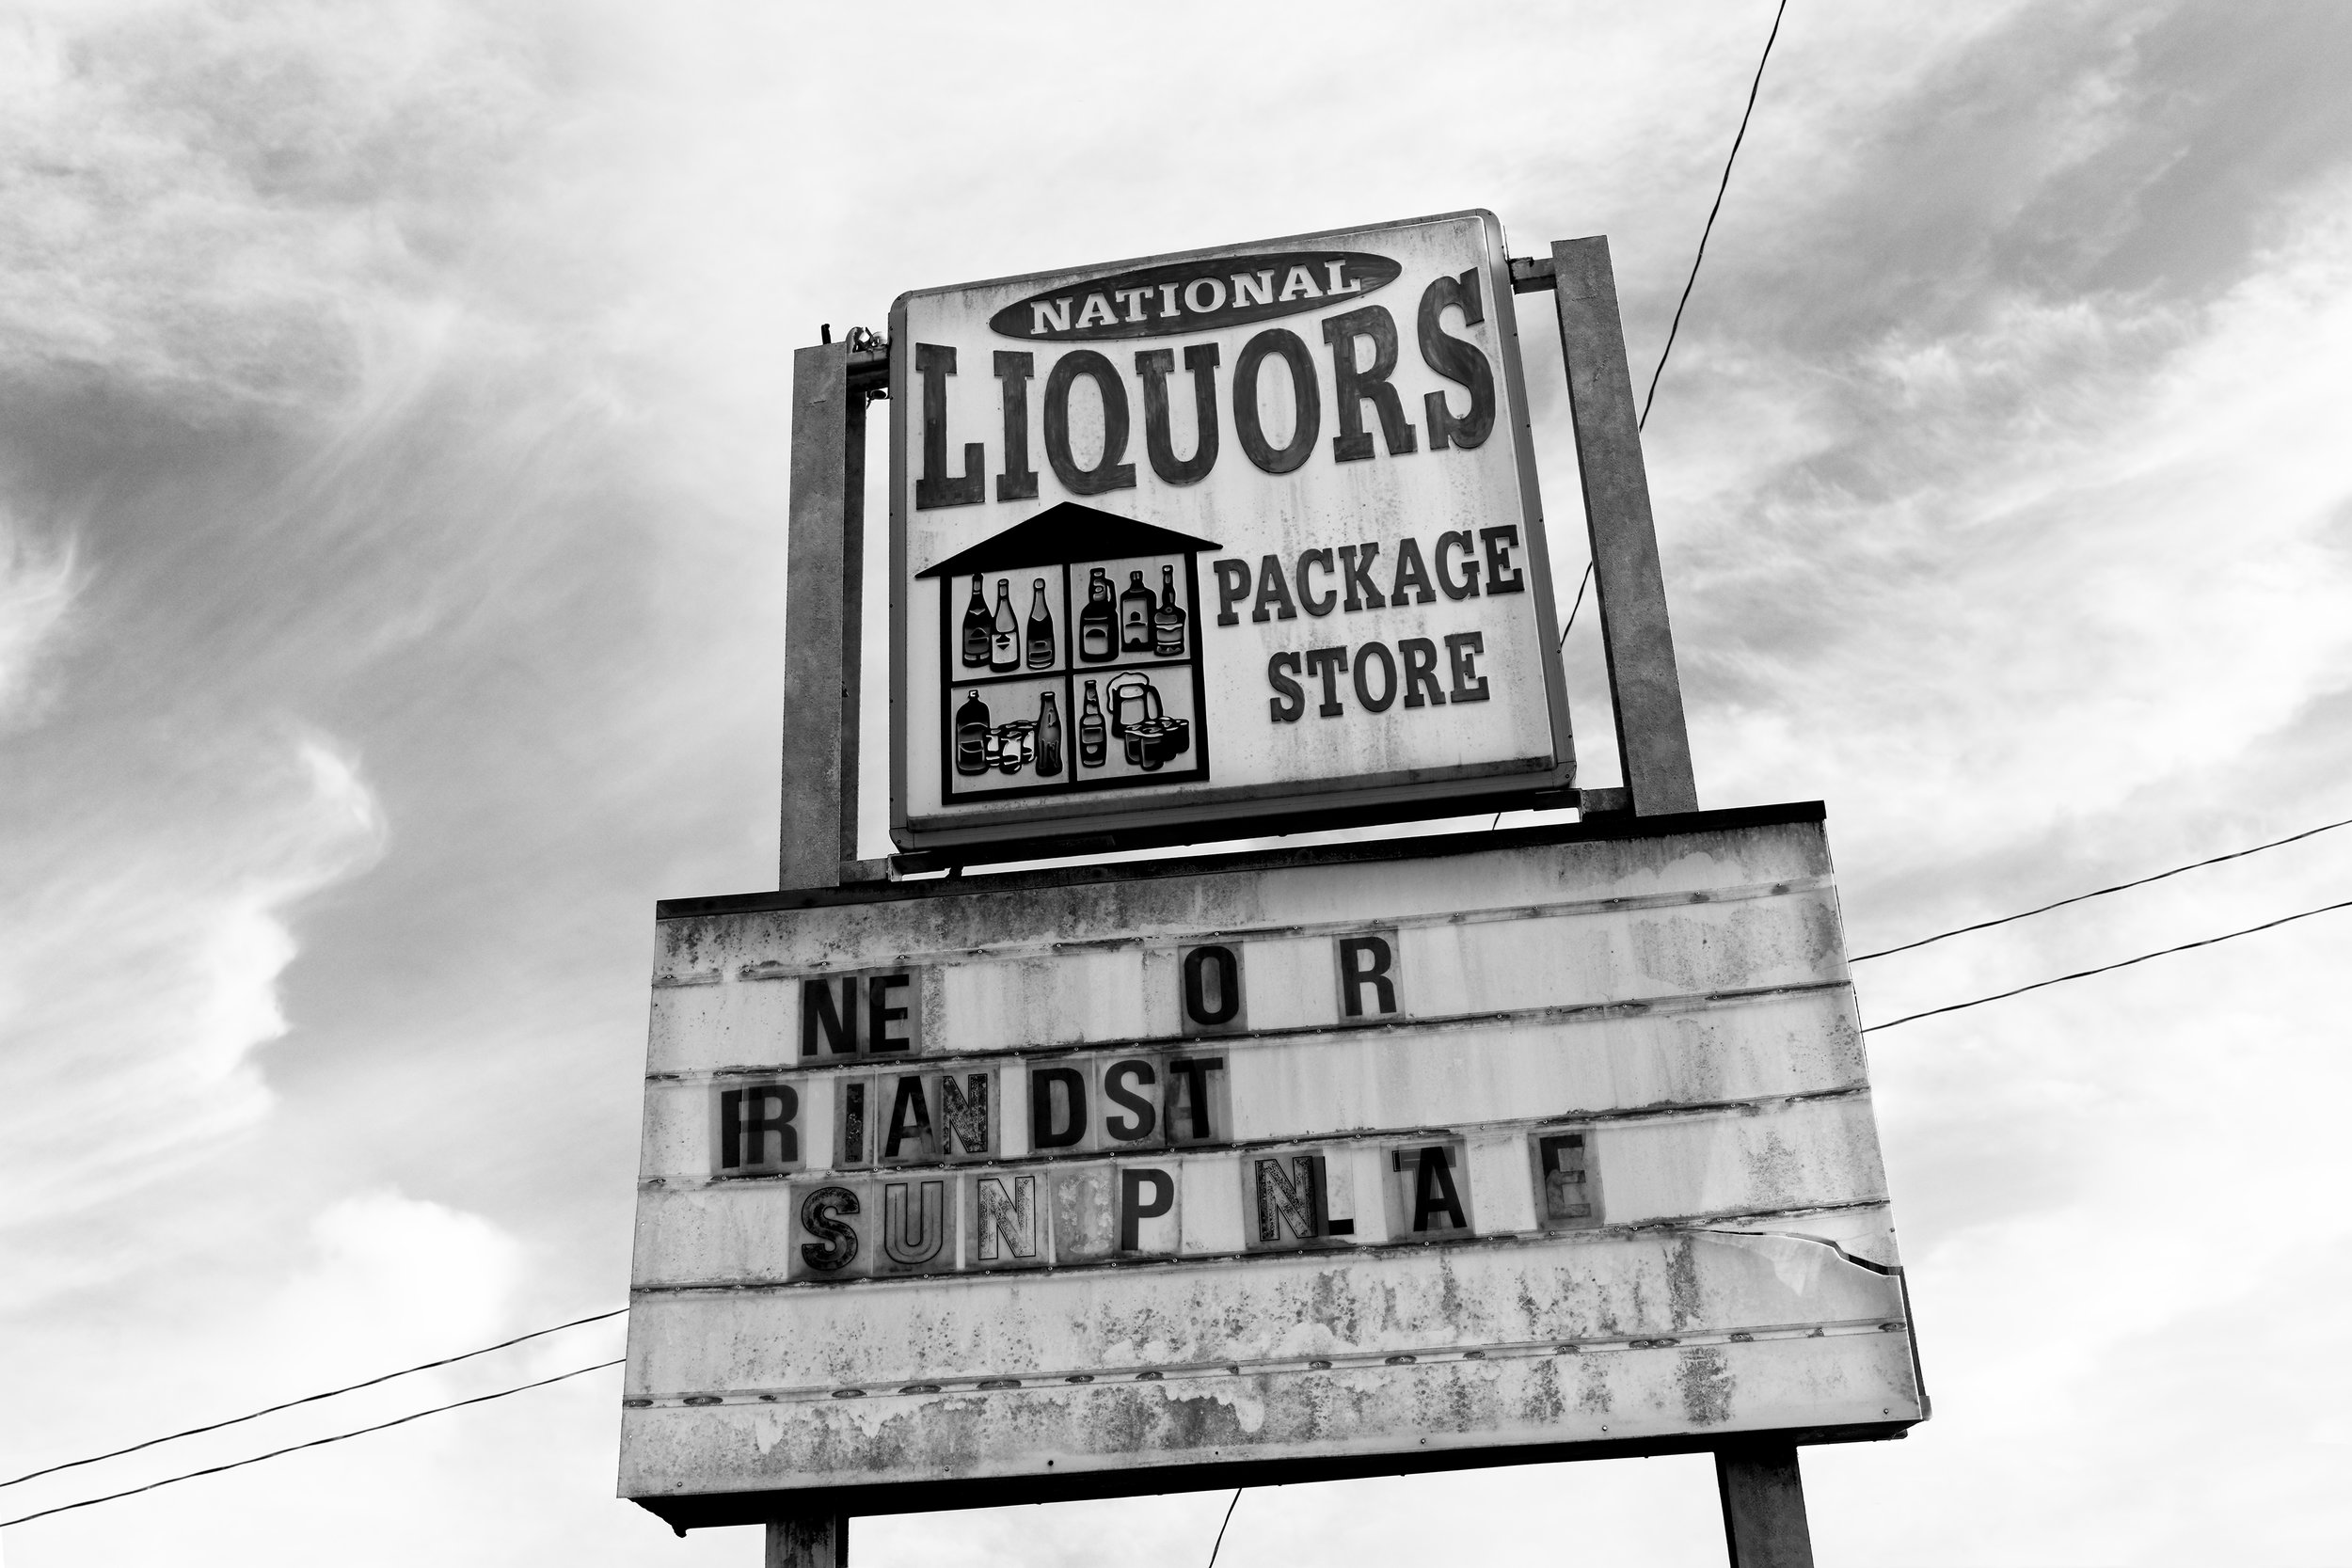 NationalLiquorsFL3945-5merged.jpg